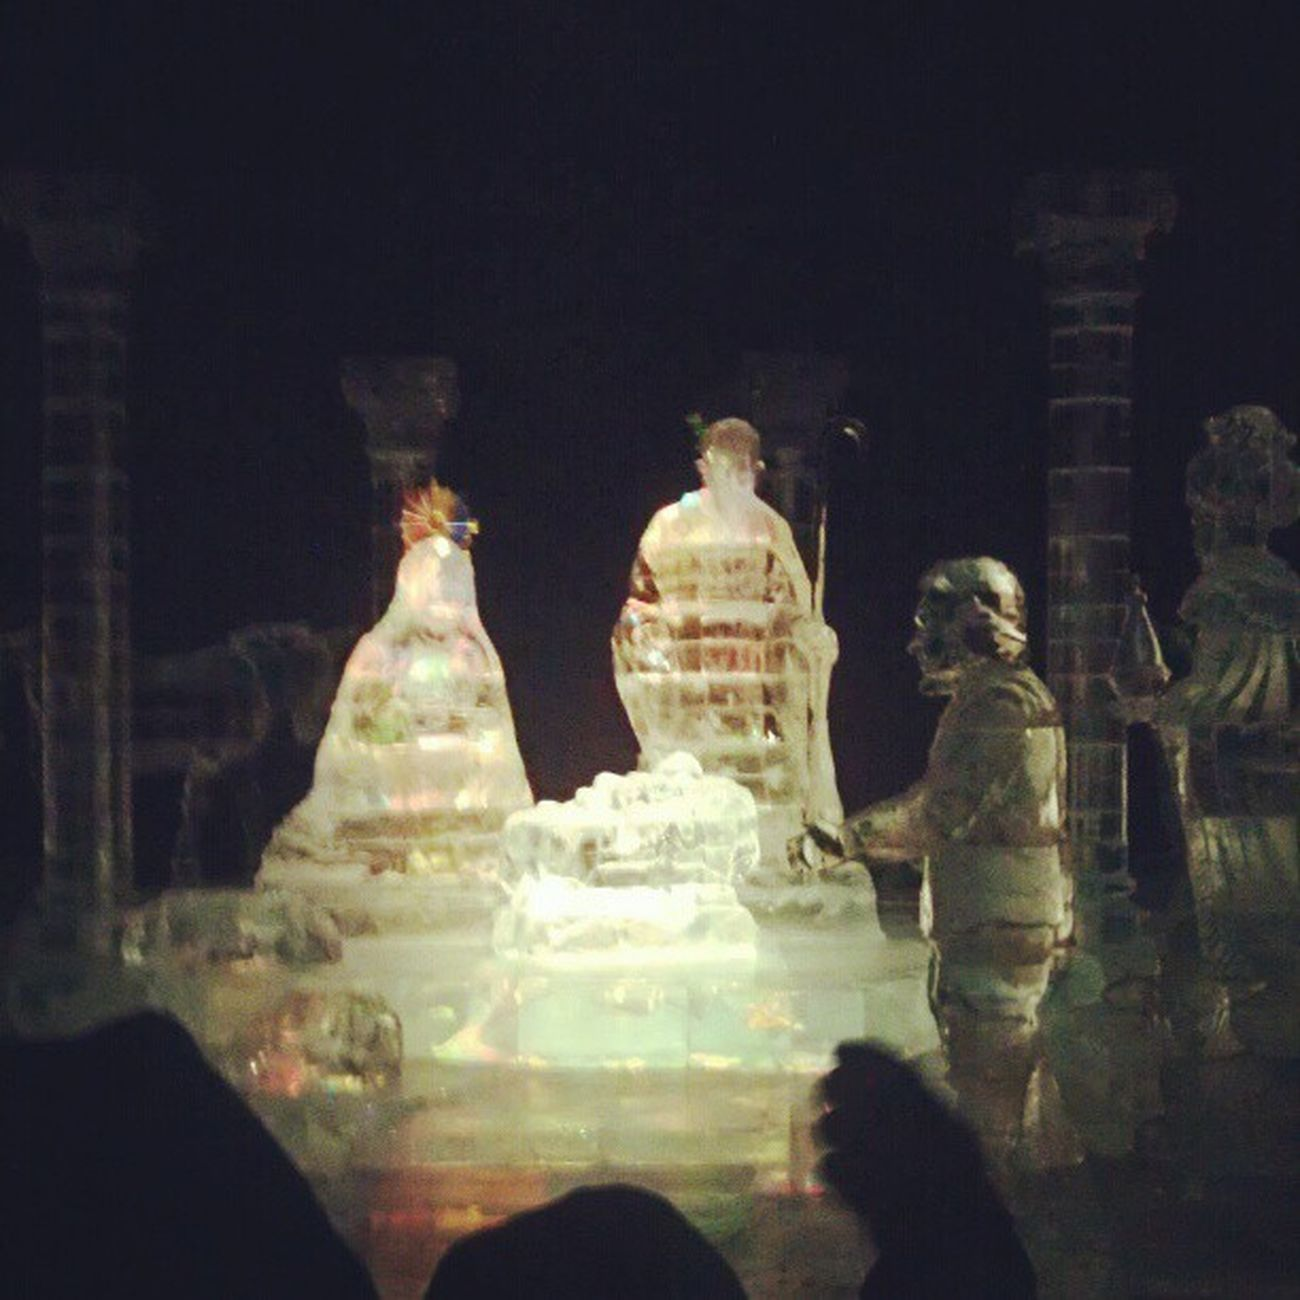 Nativity Scene at the end of Ice at the NationalHarbor